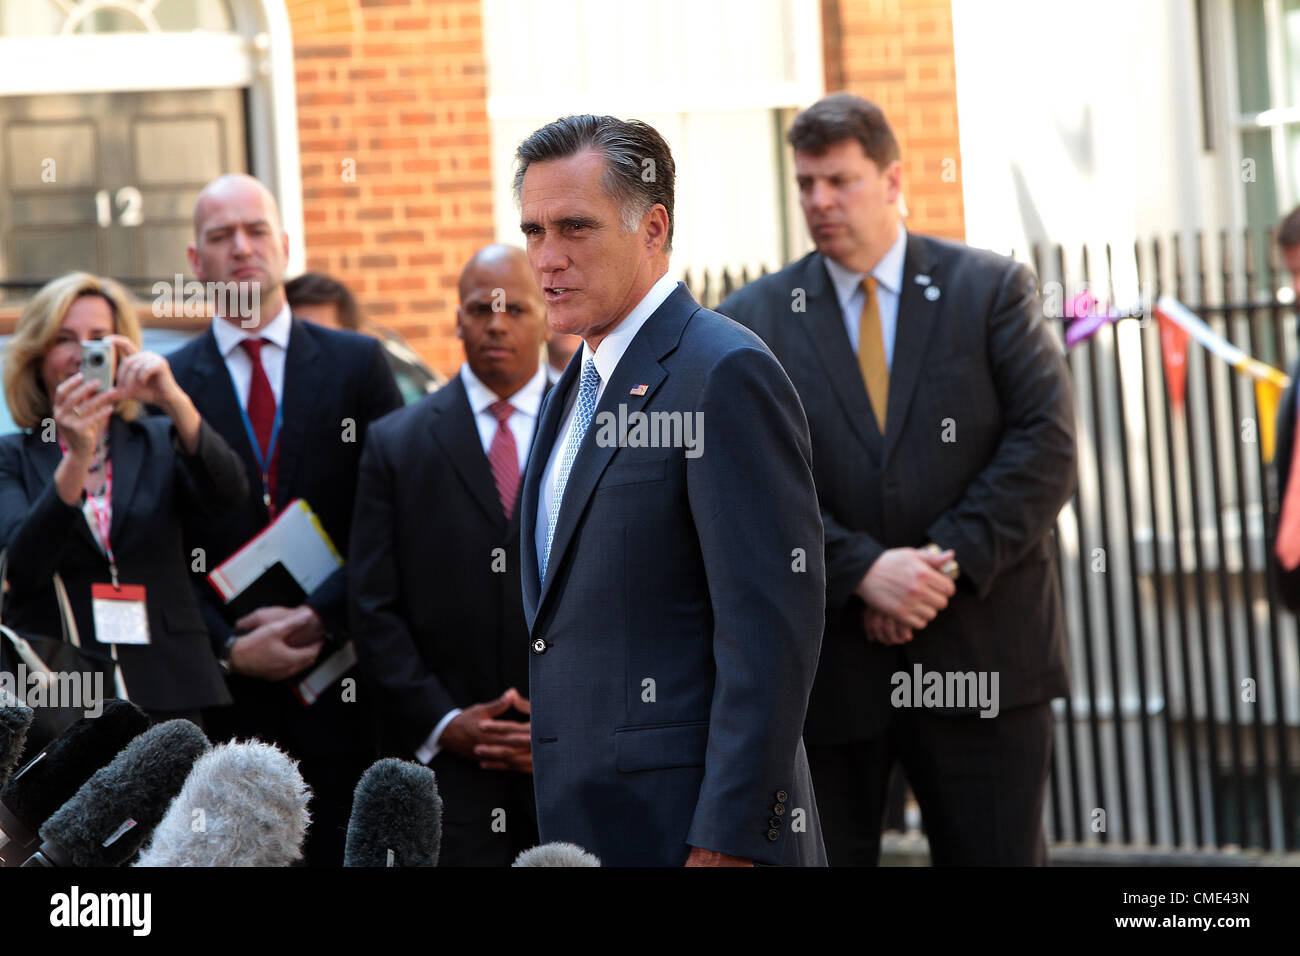 US Republican presidential candidate Mitt Romney addresses American media outside Number 10 Downing Street in London - Stock Image